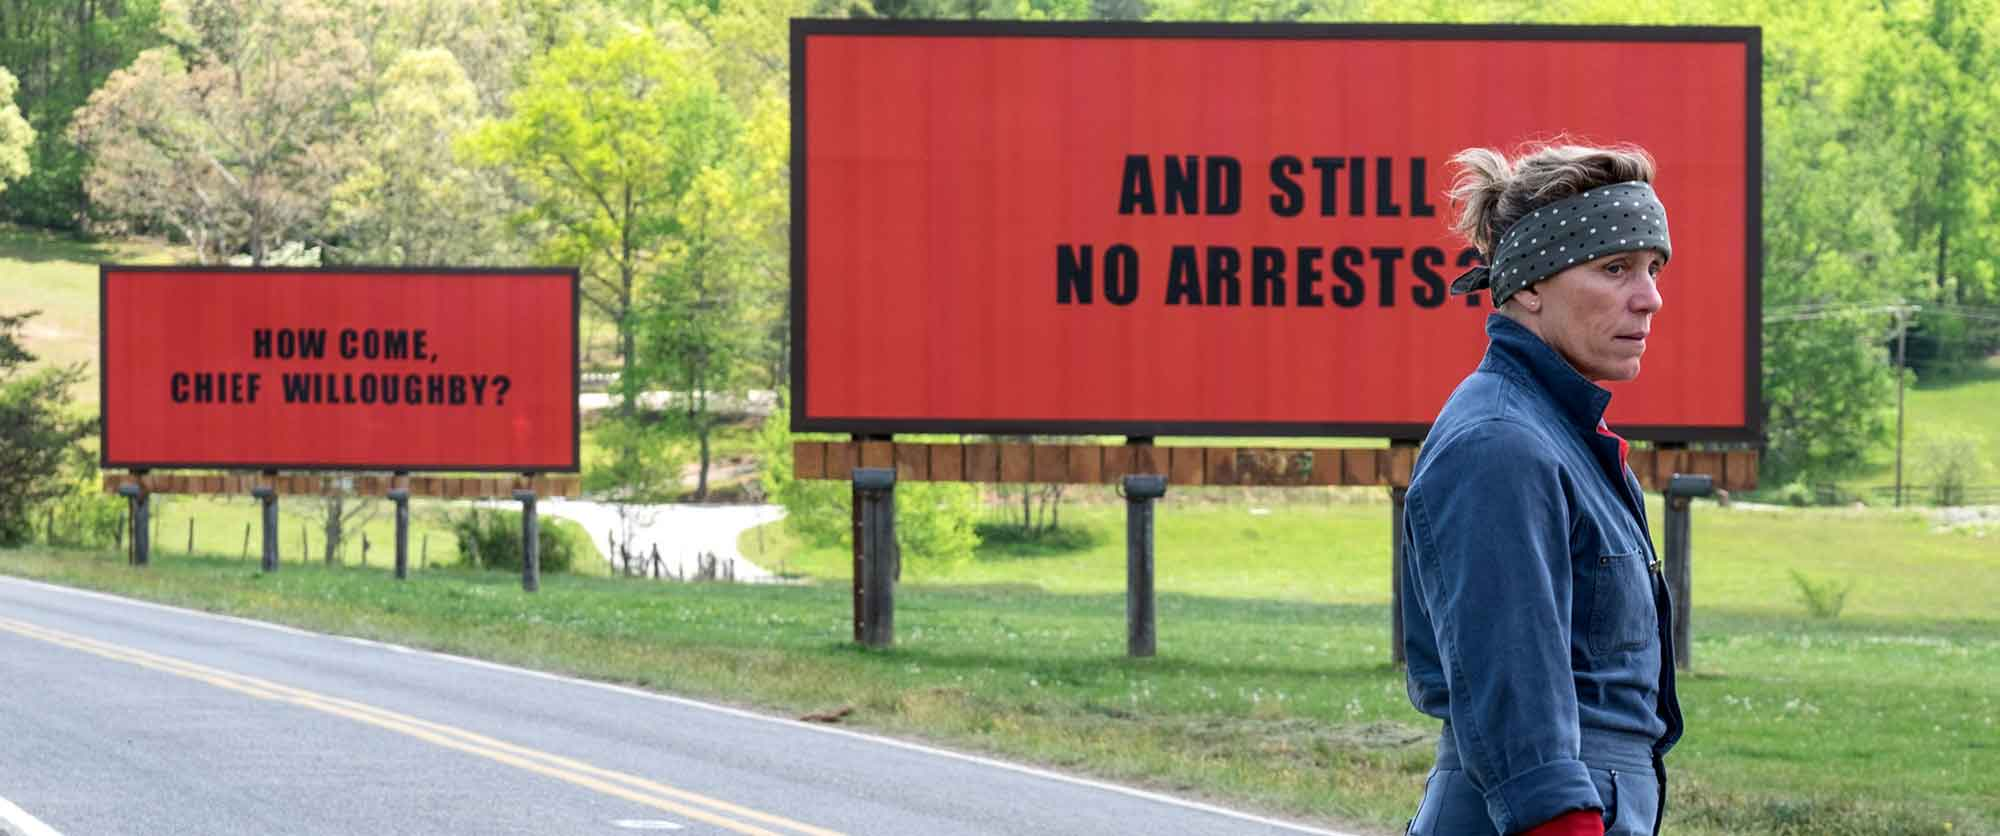 Three-Billboards-Outside-Ebbing-Missouri-Frances-McDormand.jpg